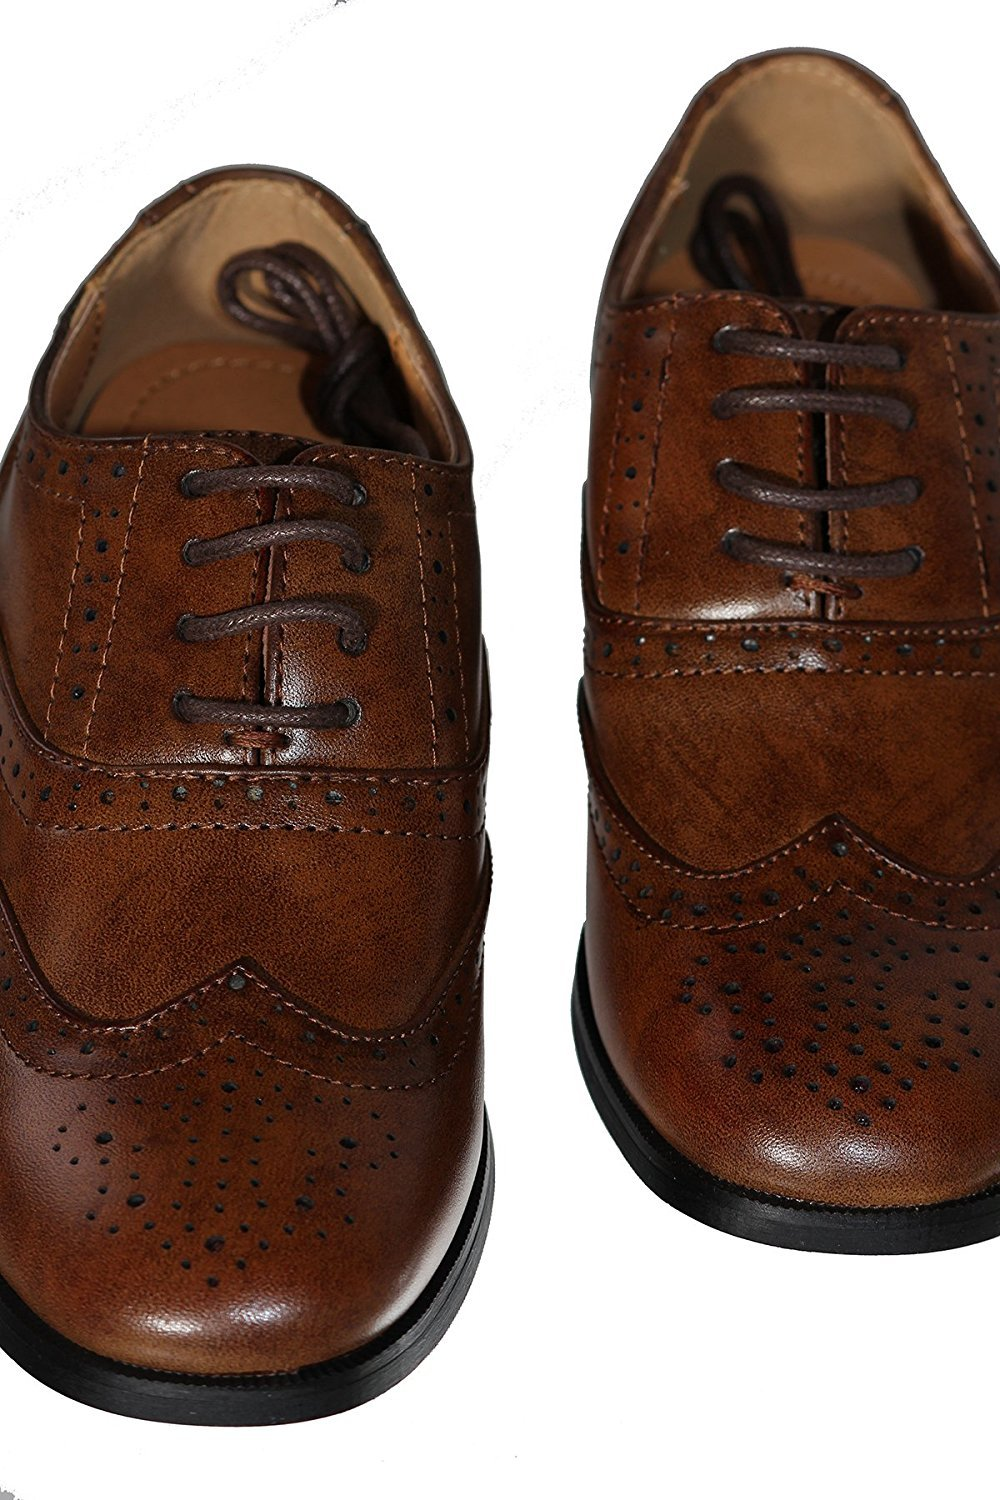 Avery Hill Boys Lace-Up Formal Oxford Style Dress Shoes - BRWN Toddler 8 Brown by Avery Hill (Image #4)